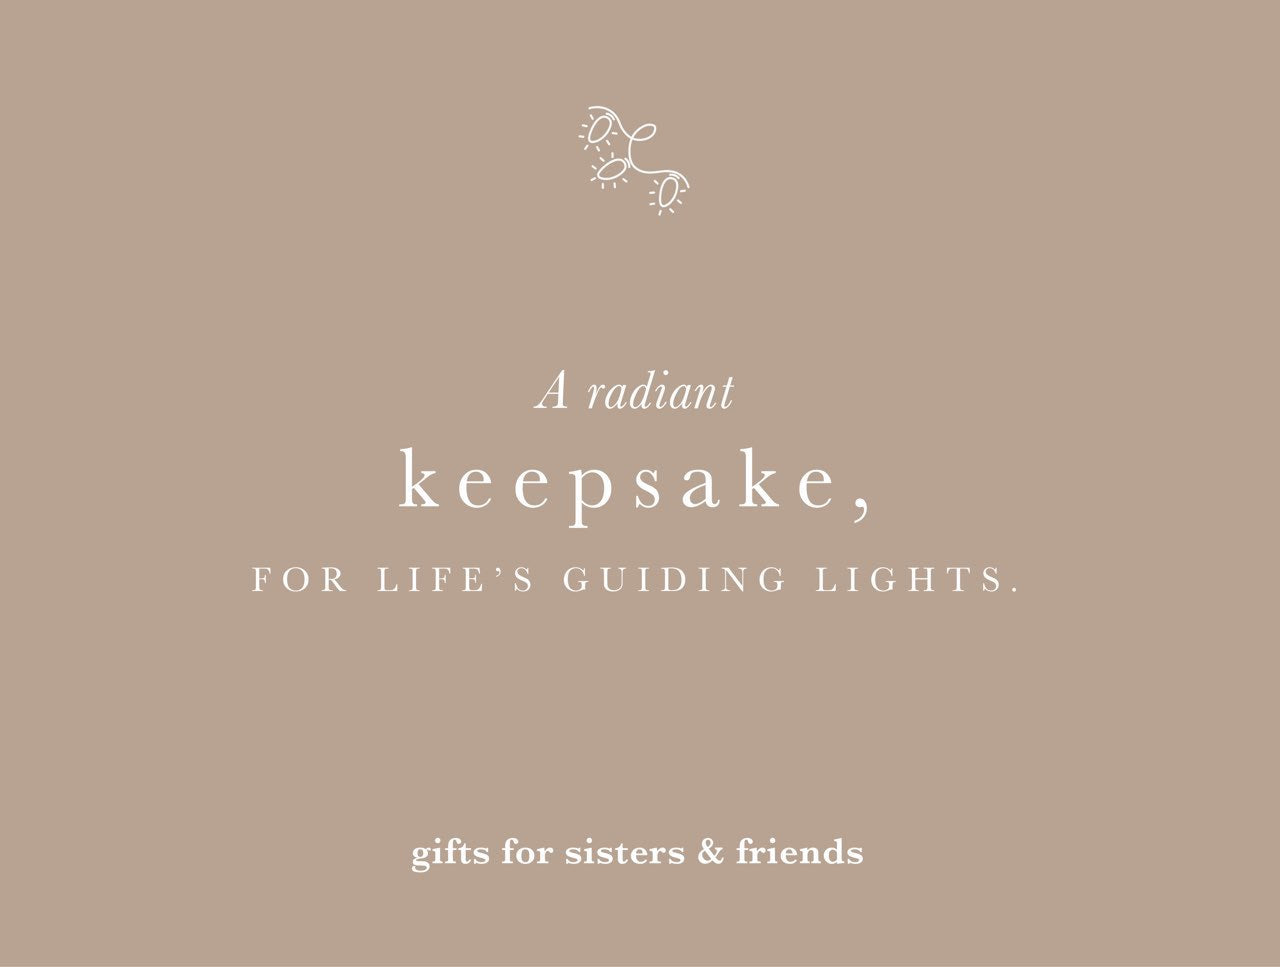 For sisters & friends